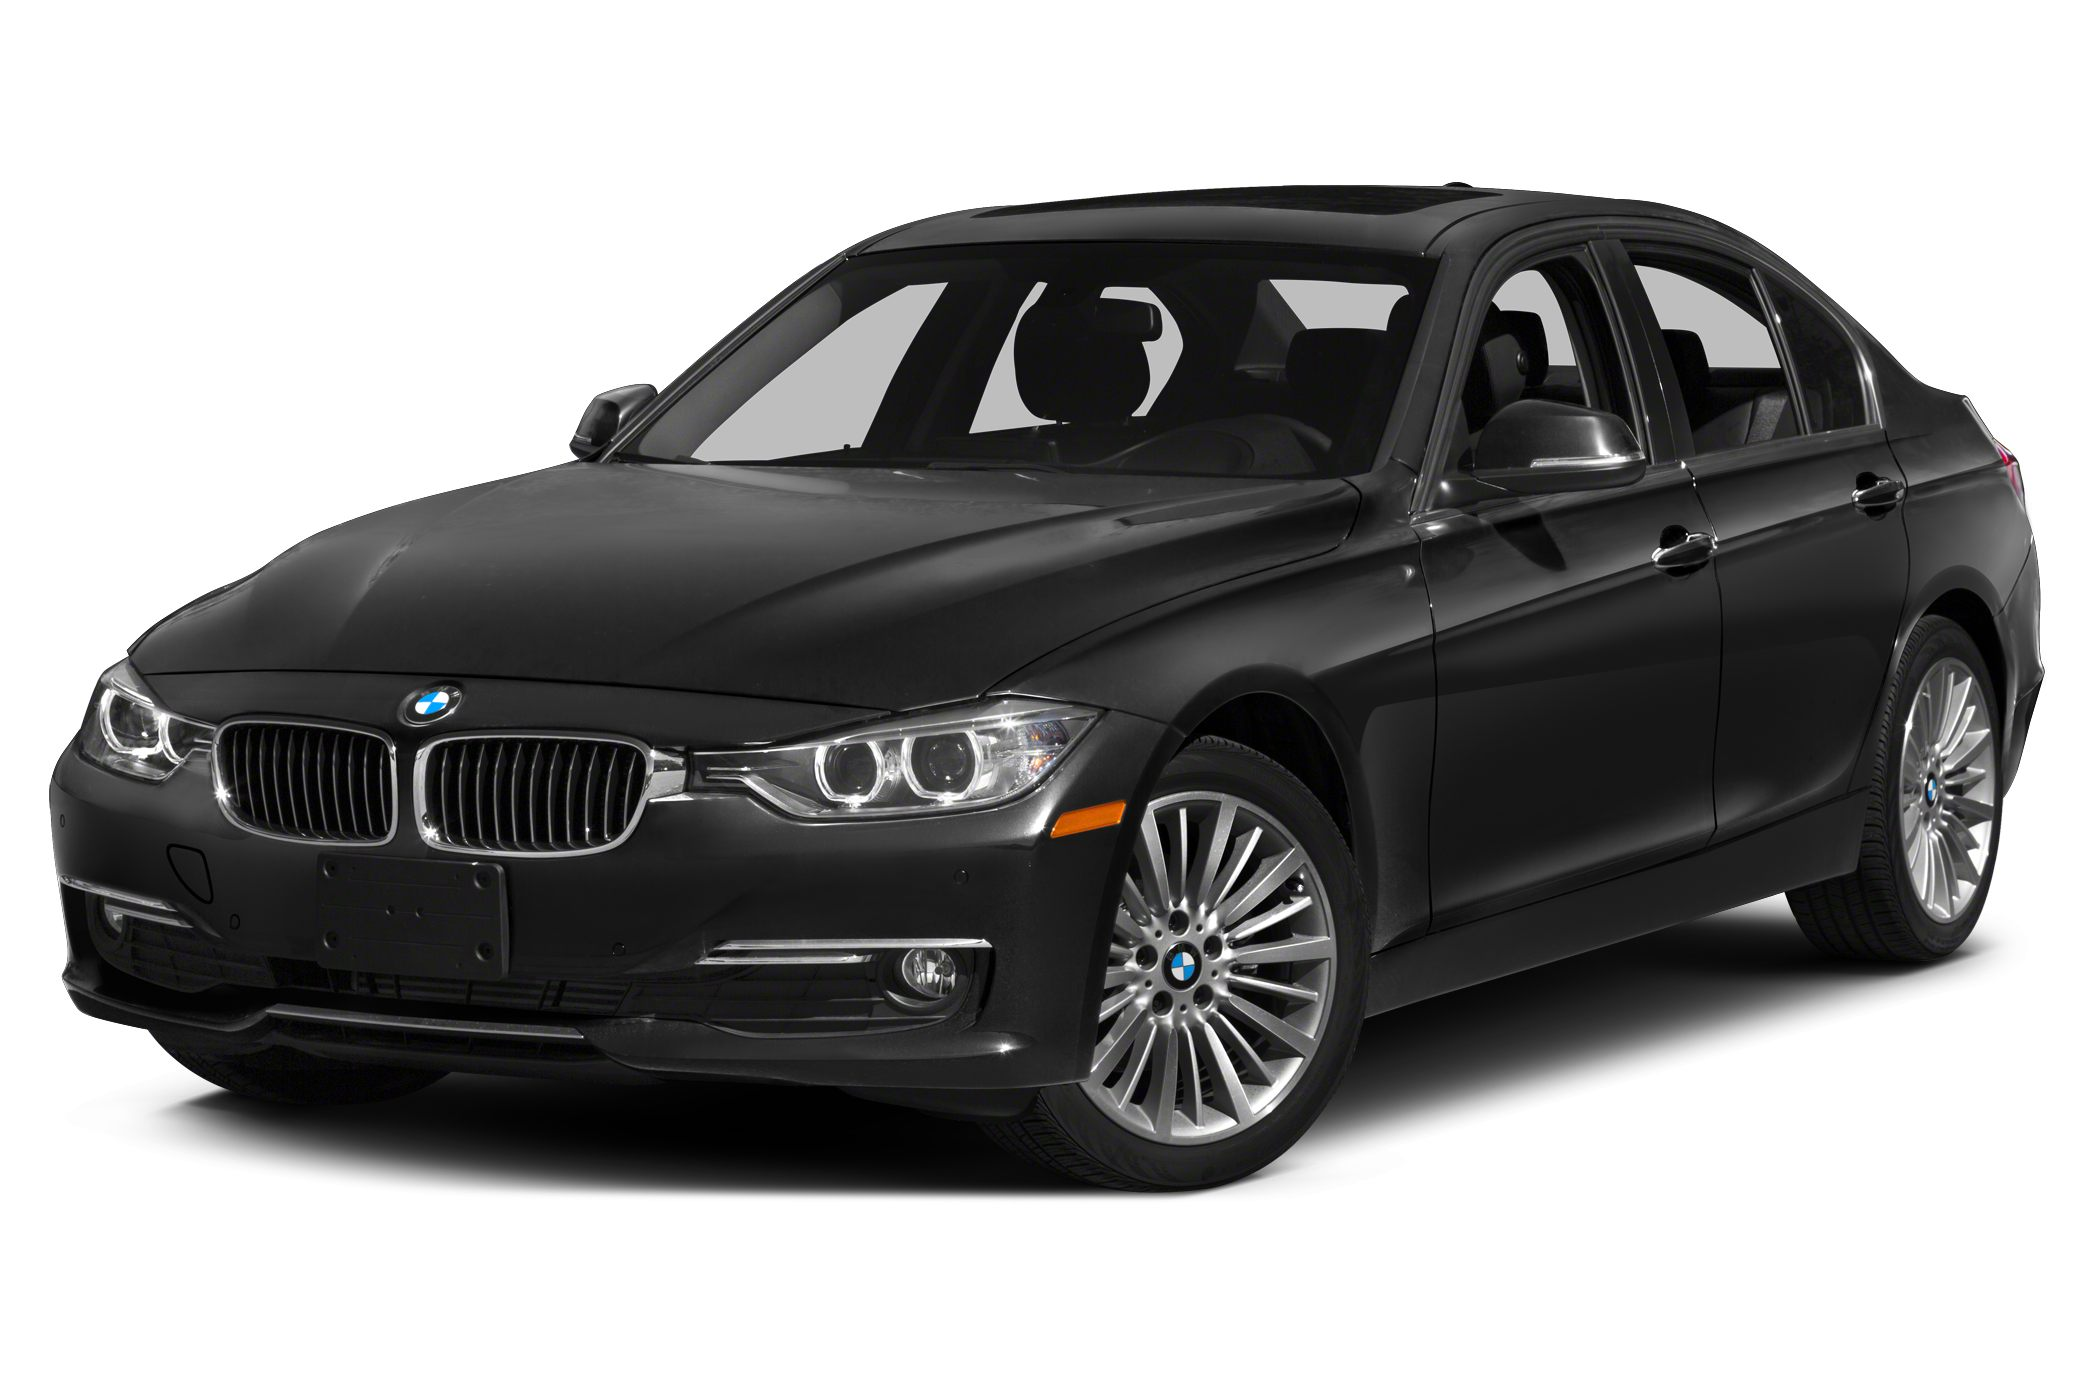 2014 BMW 328d Base Sedan for sale in Midland for $38,999 with 12,611 miles.